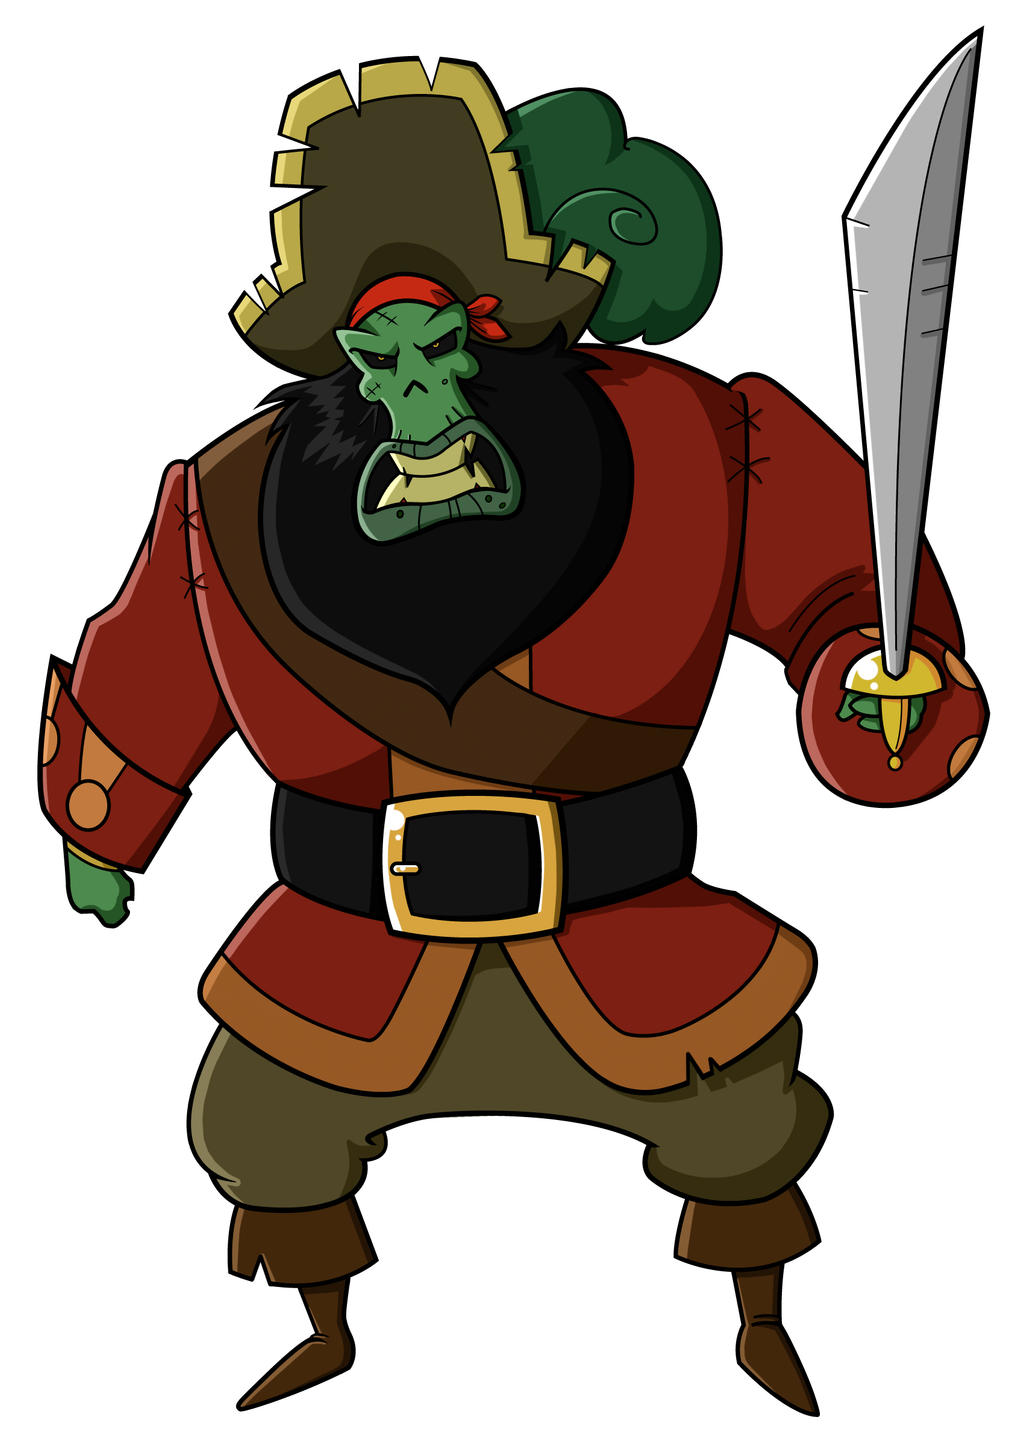 zombie_pirate_lechuck_by_laura32.jpg